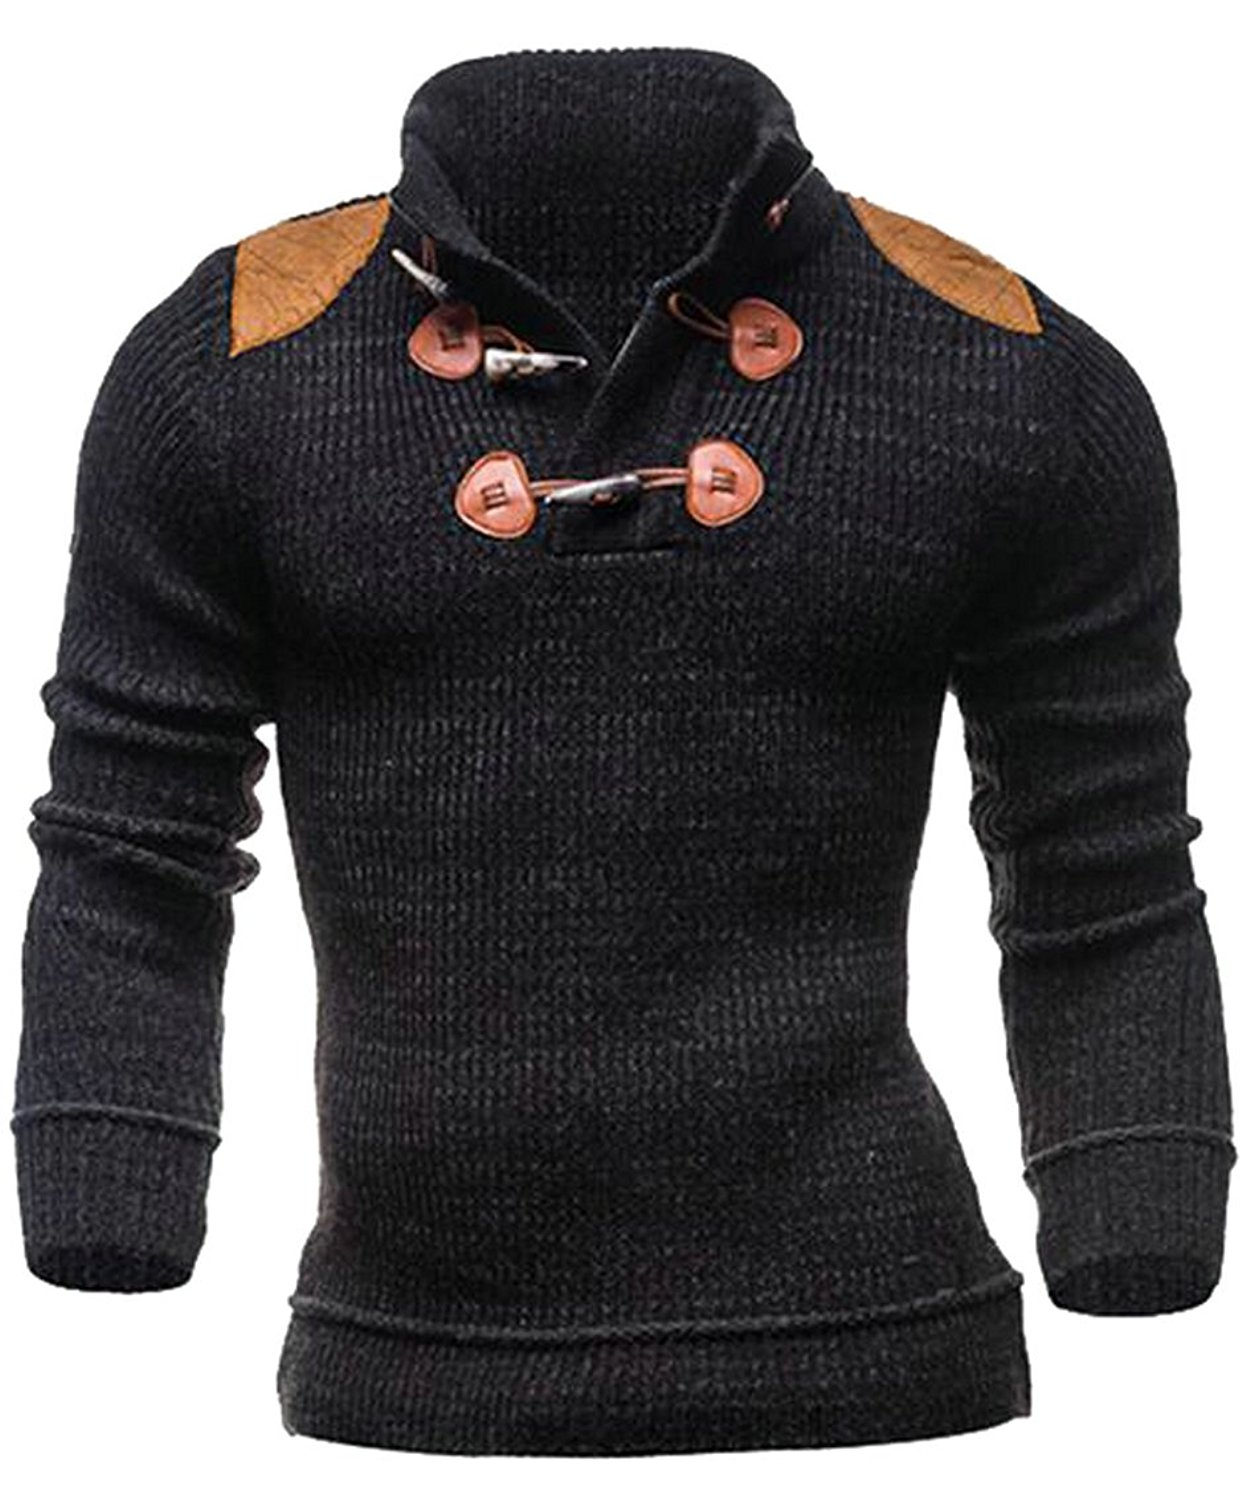 BU2H Men AutumnTurtle Neck Solid Long Sleeve Knit Cable Pullover Sweater